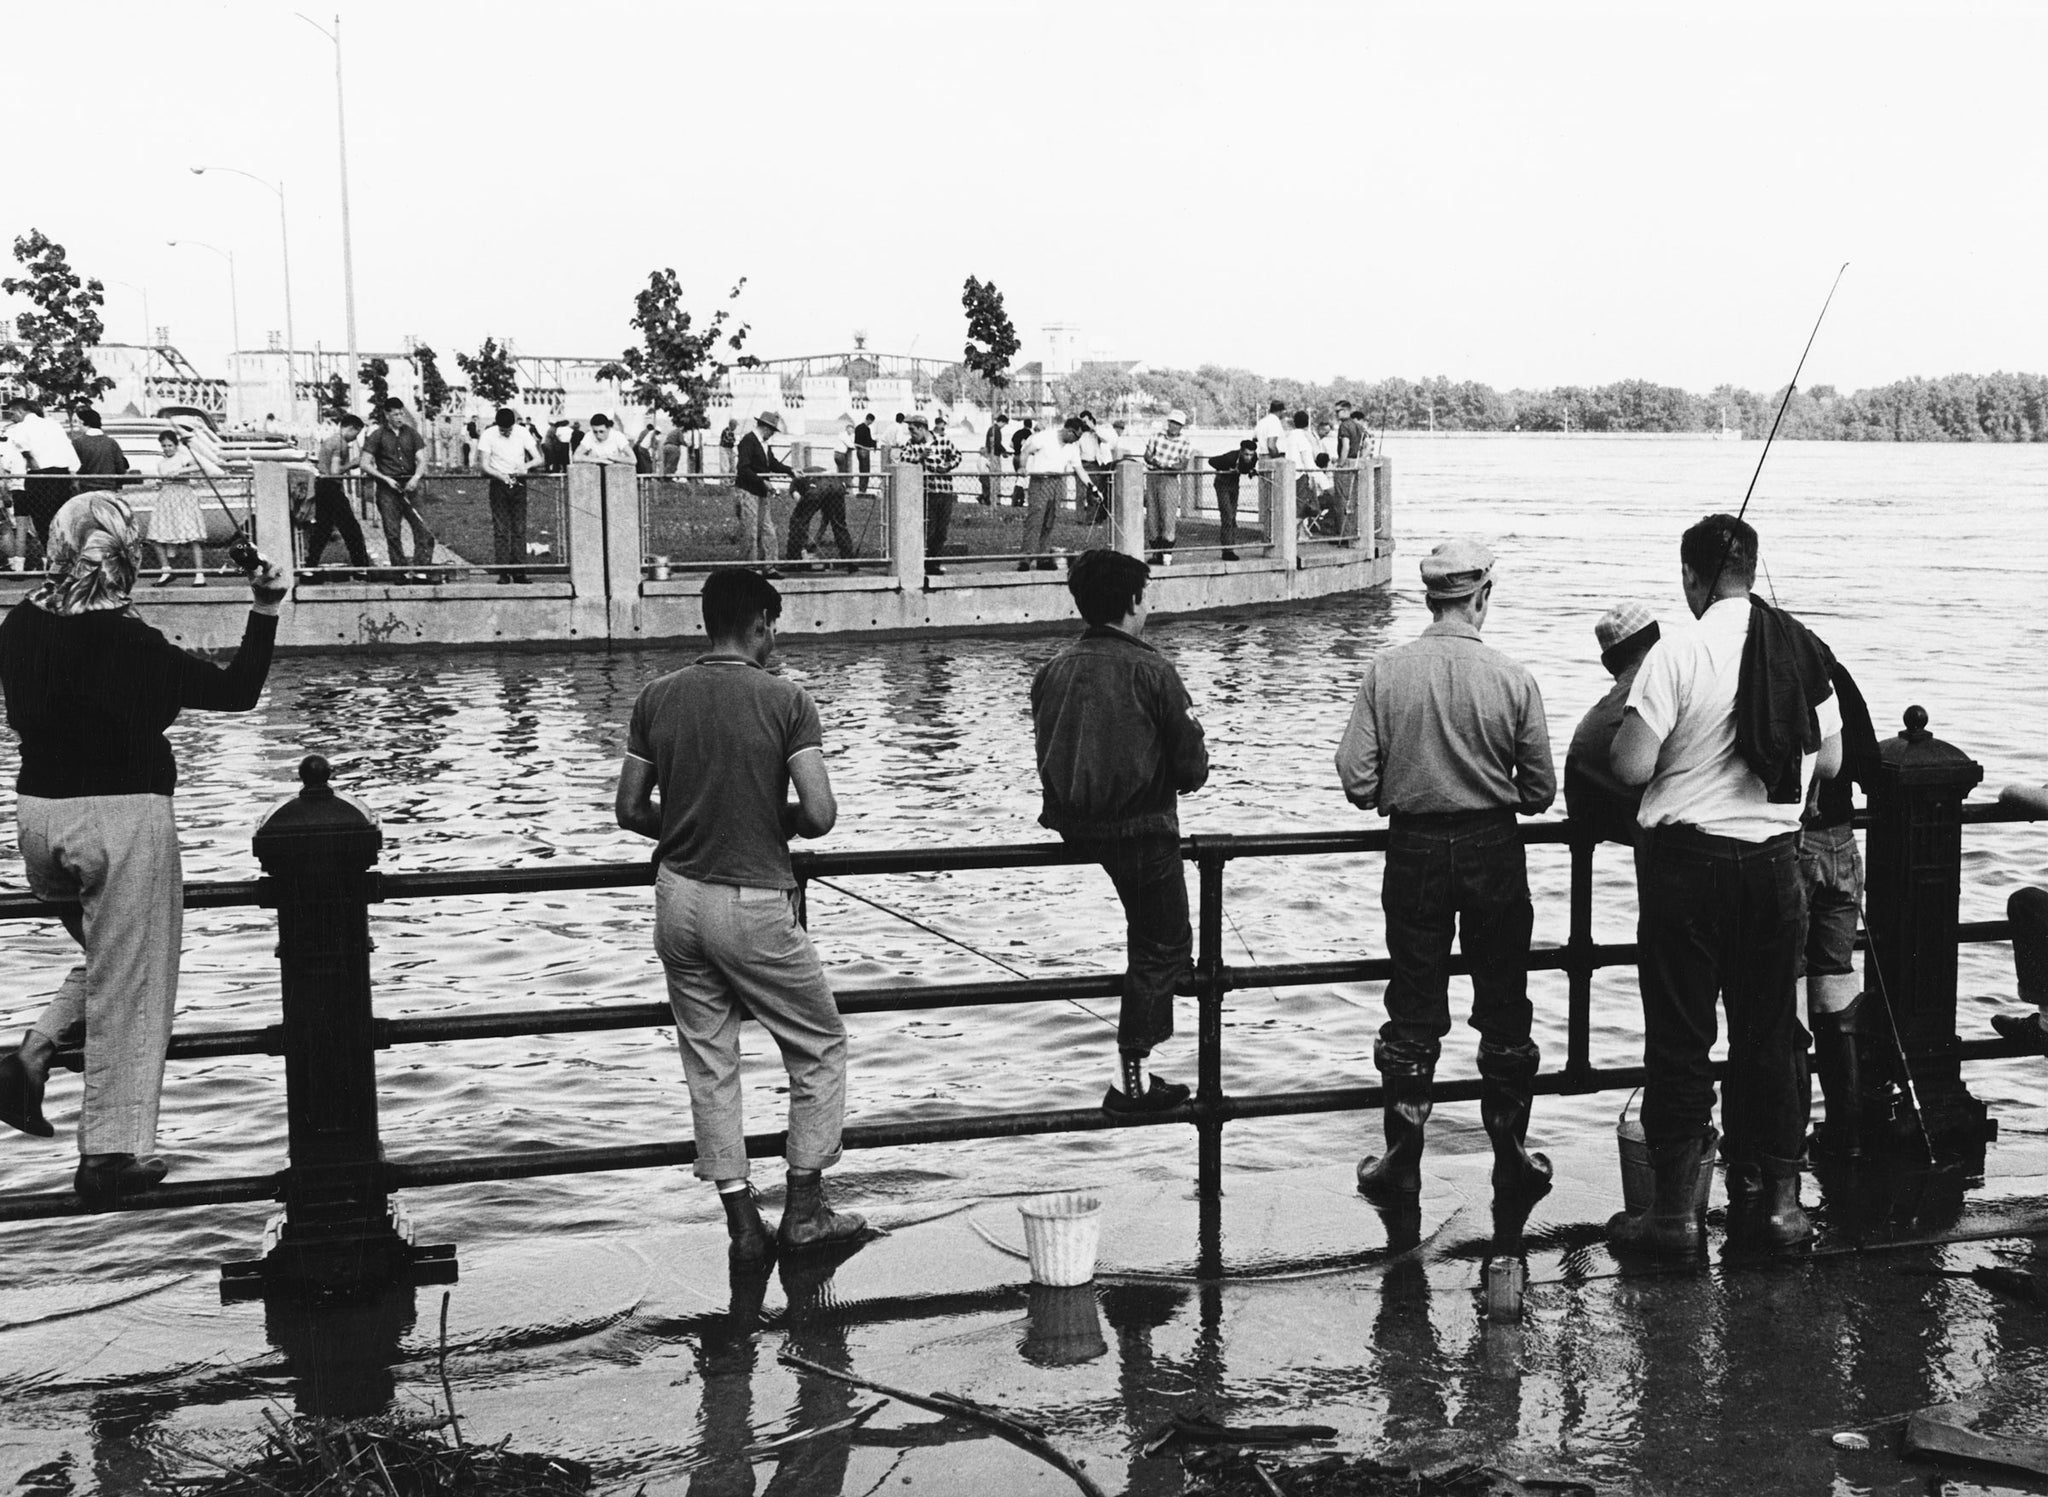 People fishing in the Mississippi River during flooding in Davenport, 1965. -- Quad-City Times